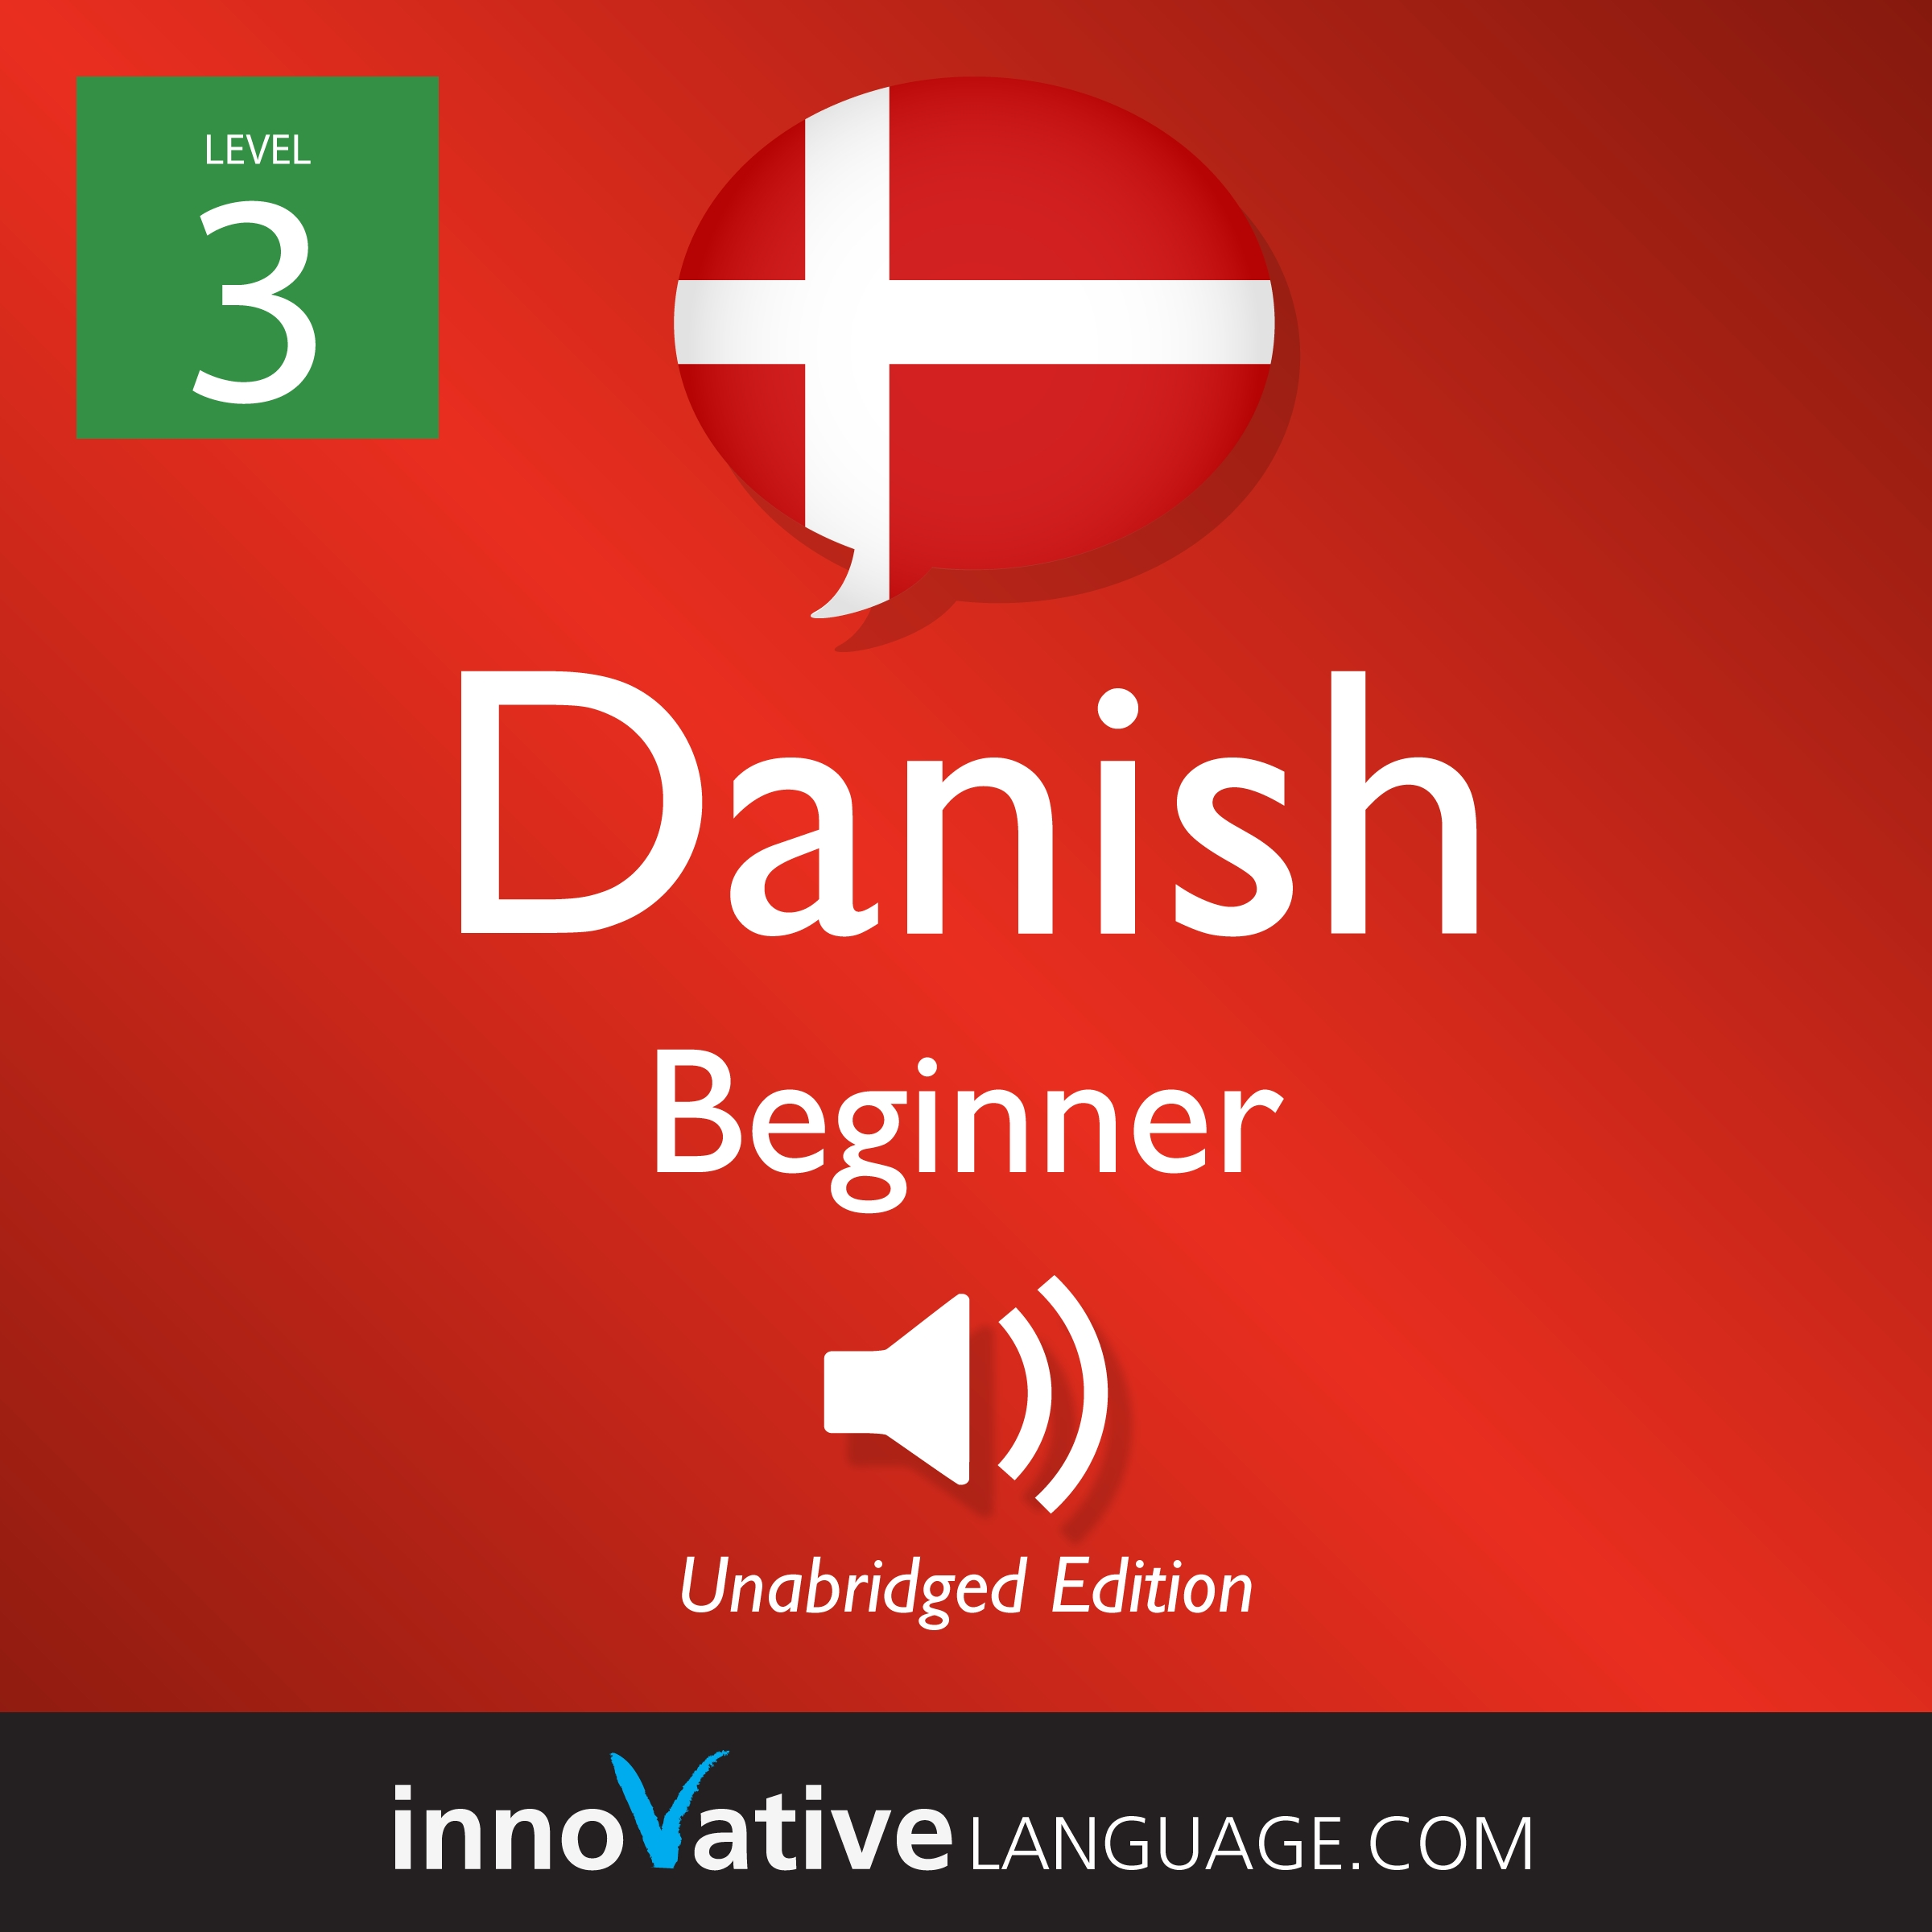 [Audiobook] Learn Danish - Level 3: Beginner Danish, Volume 1